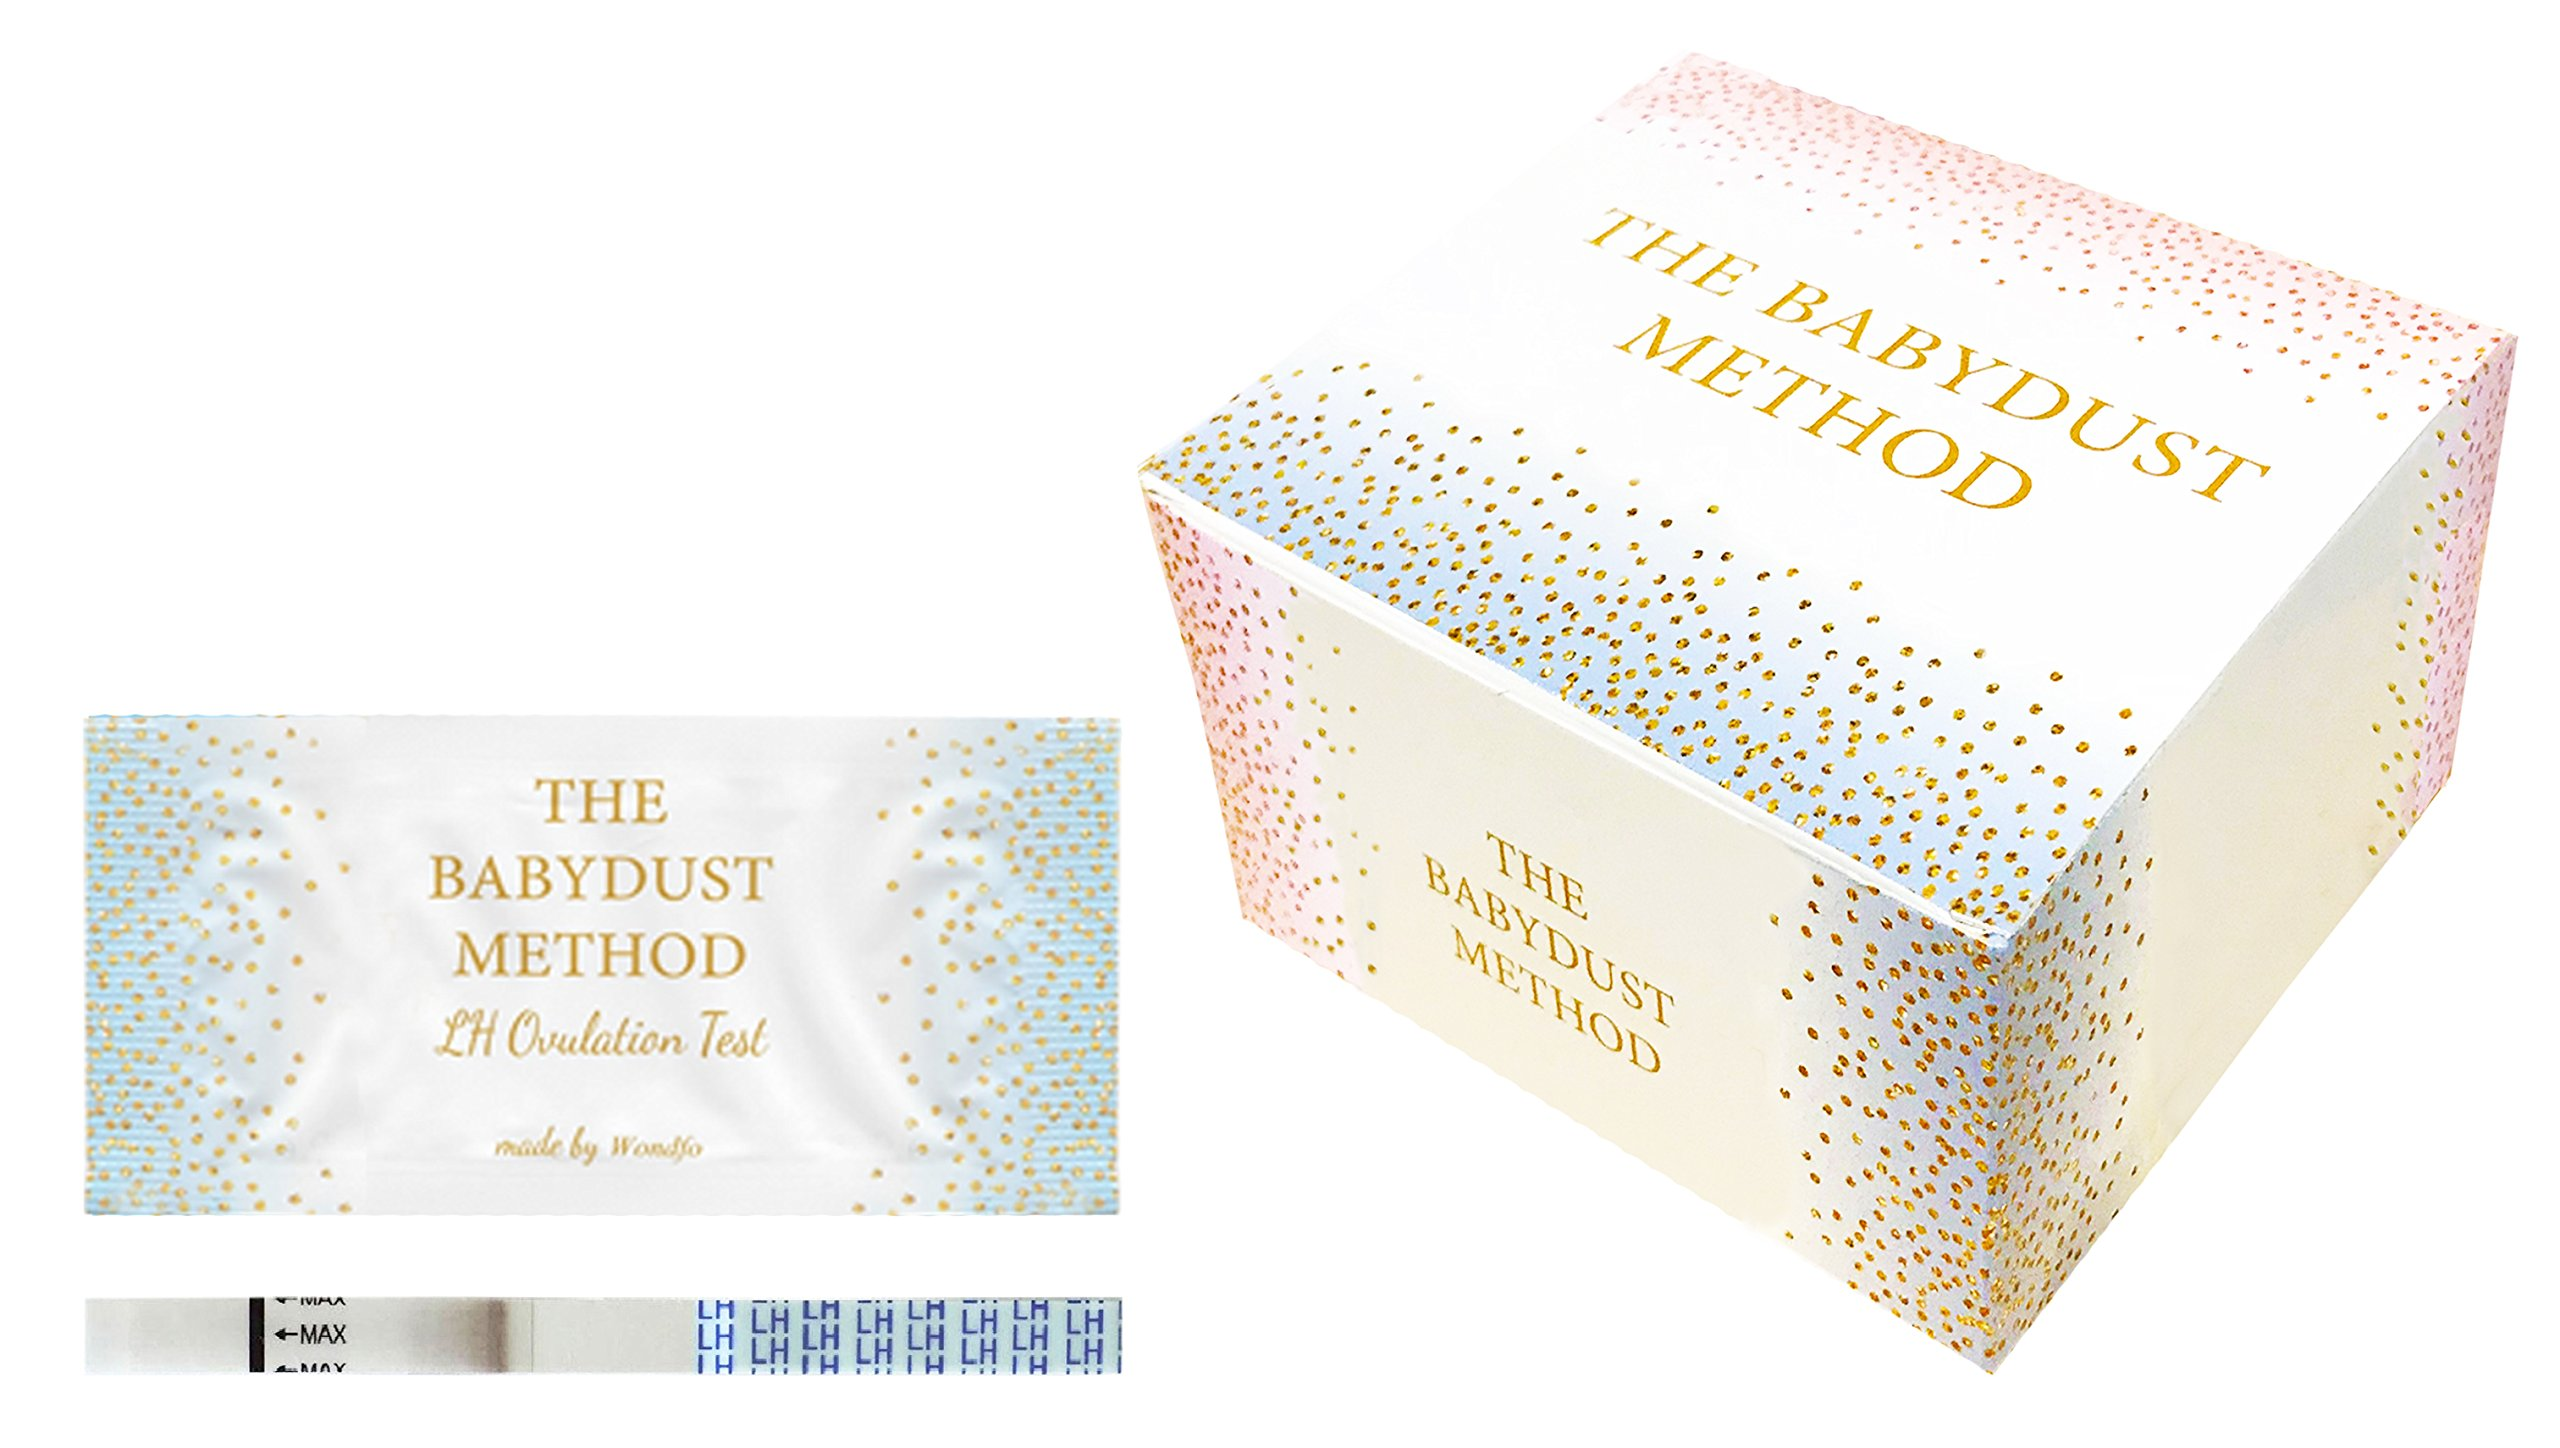 Wondfo Extra Wide Tests - by The Babydust Method - 50 LH ovulation test strips by The Babydust Method